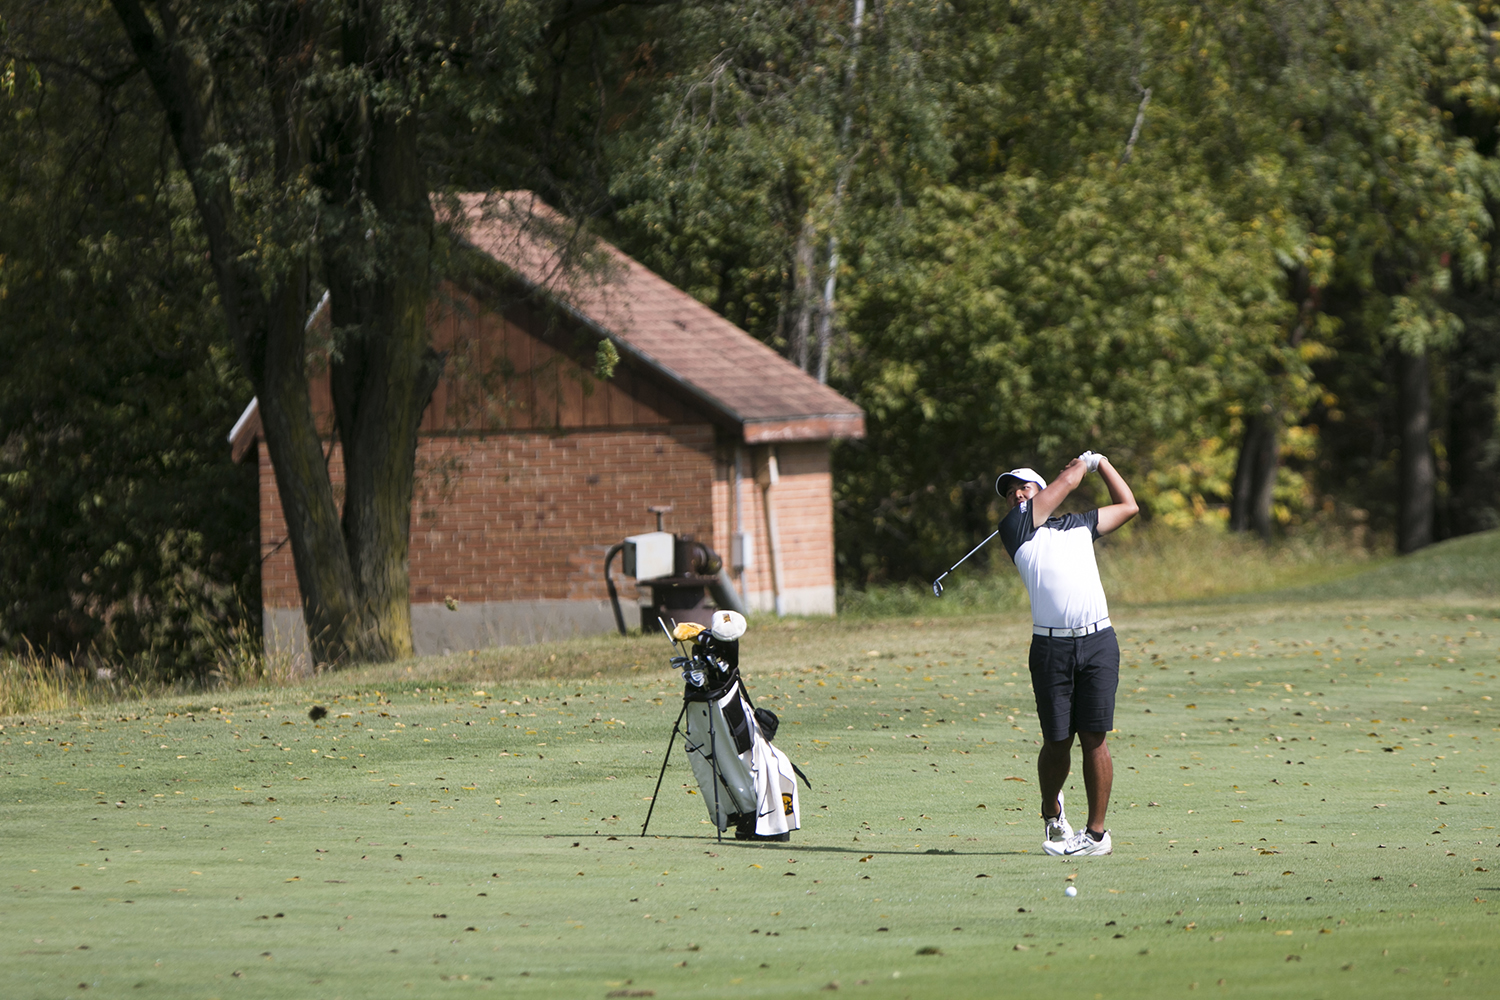 Iowa's Ryoto Furuya chips during a tournament at the Donald Ross Course at the Cedar Rapids Country Club in Cedar Rapids on Tuesday, Sept. 19, 2017.